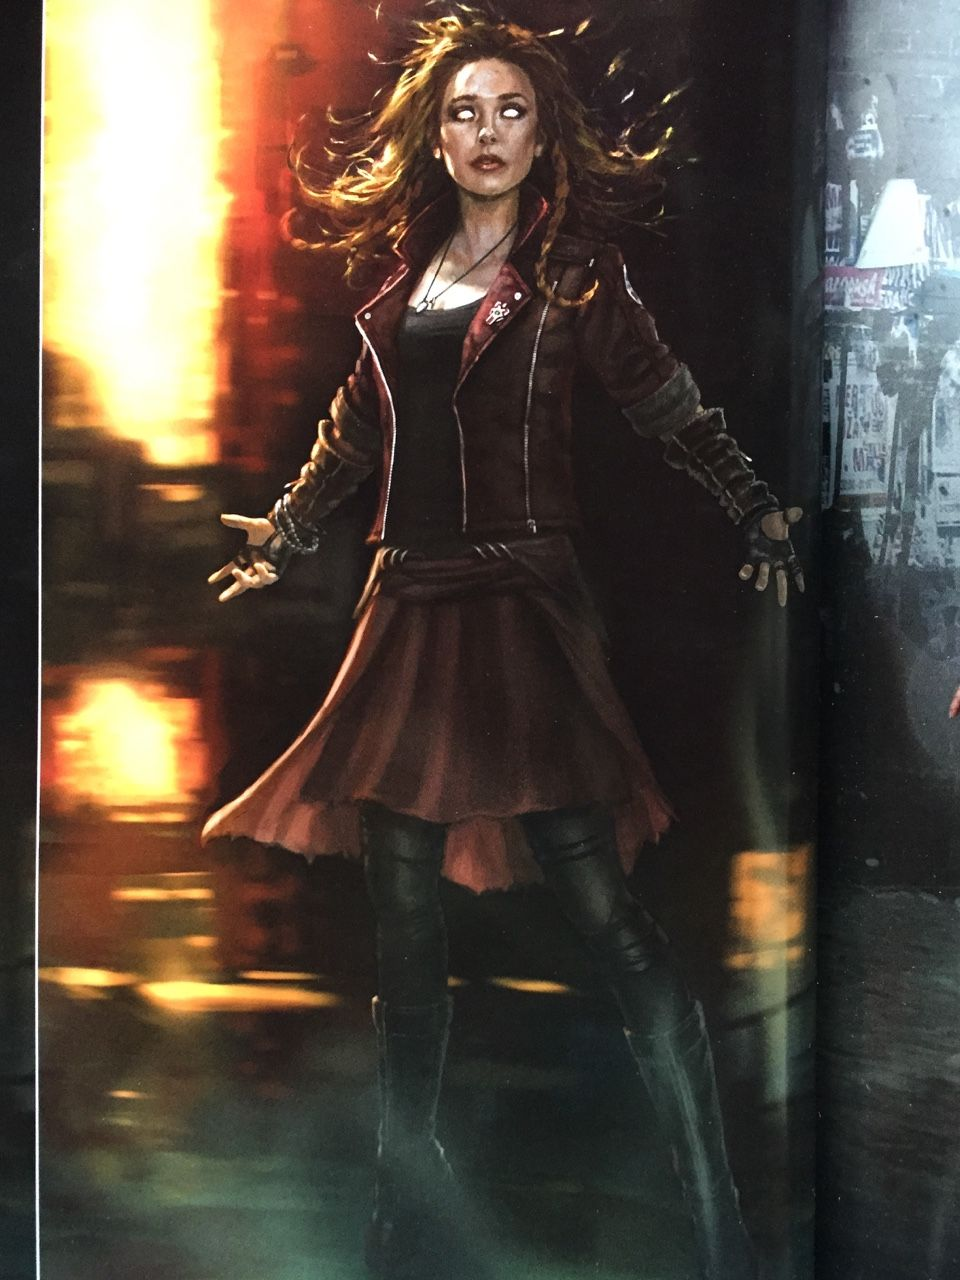 Wanda Maximoff/Scarlet Witch Avengers Age of Ultron Concept Art ...